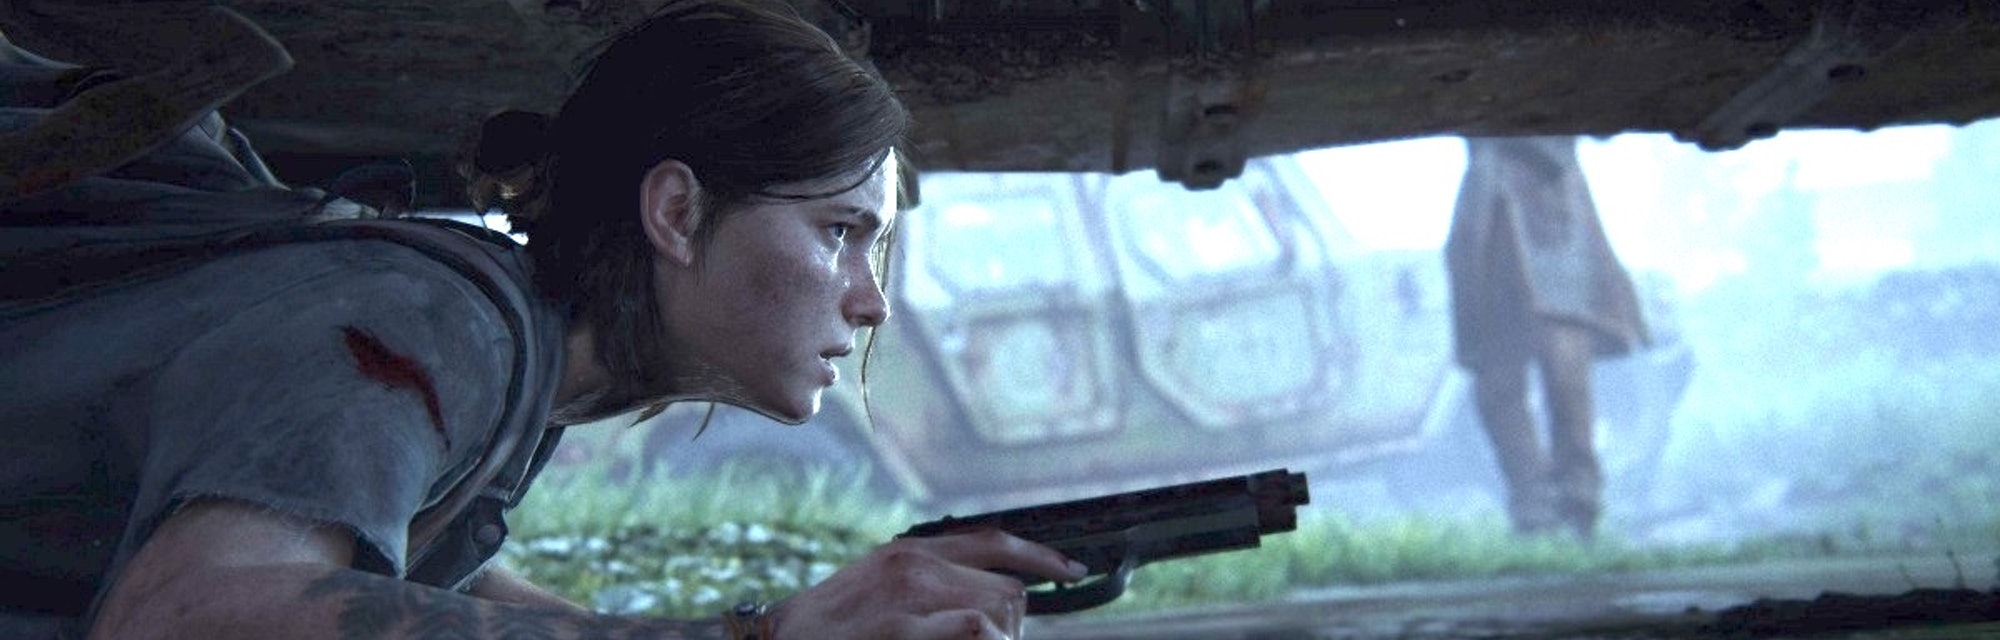 Ellie crouches beneath a car to evade enemies in 'The Last of Us Part II,' out June 19.